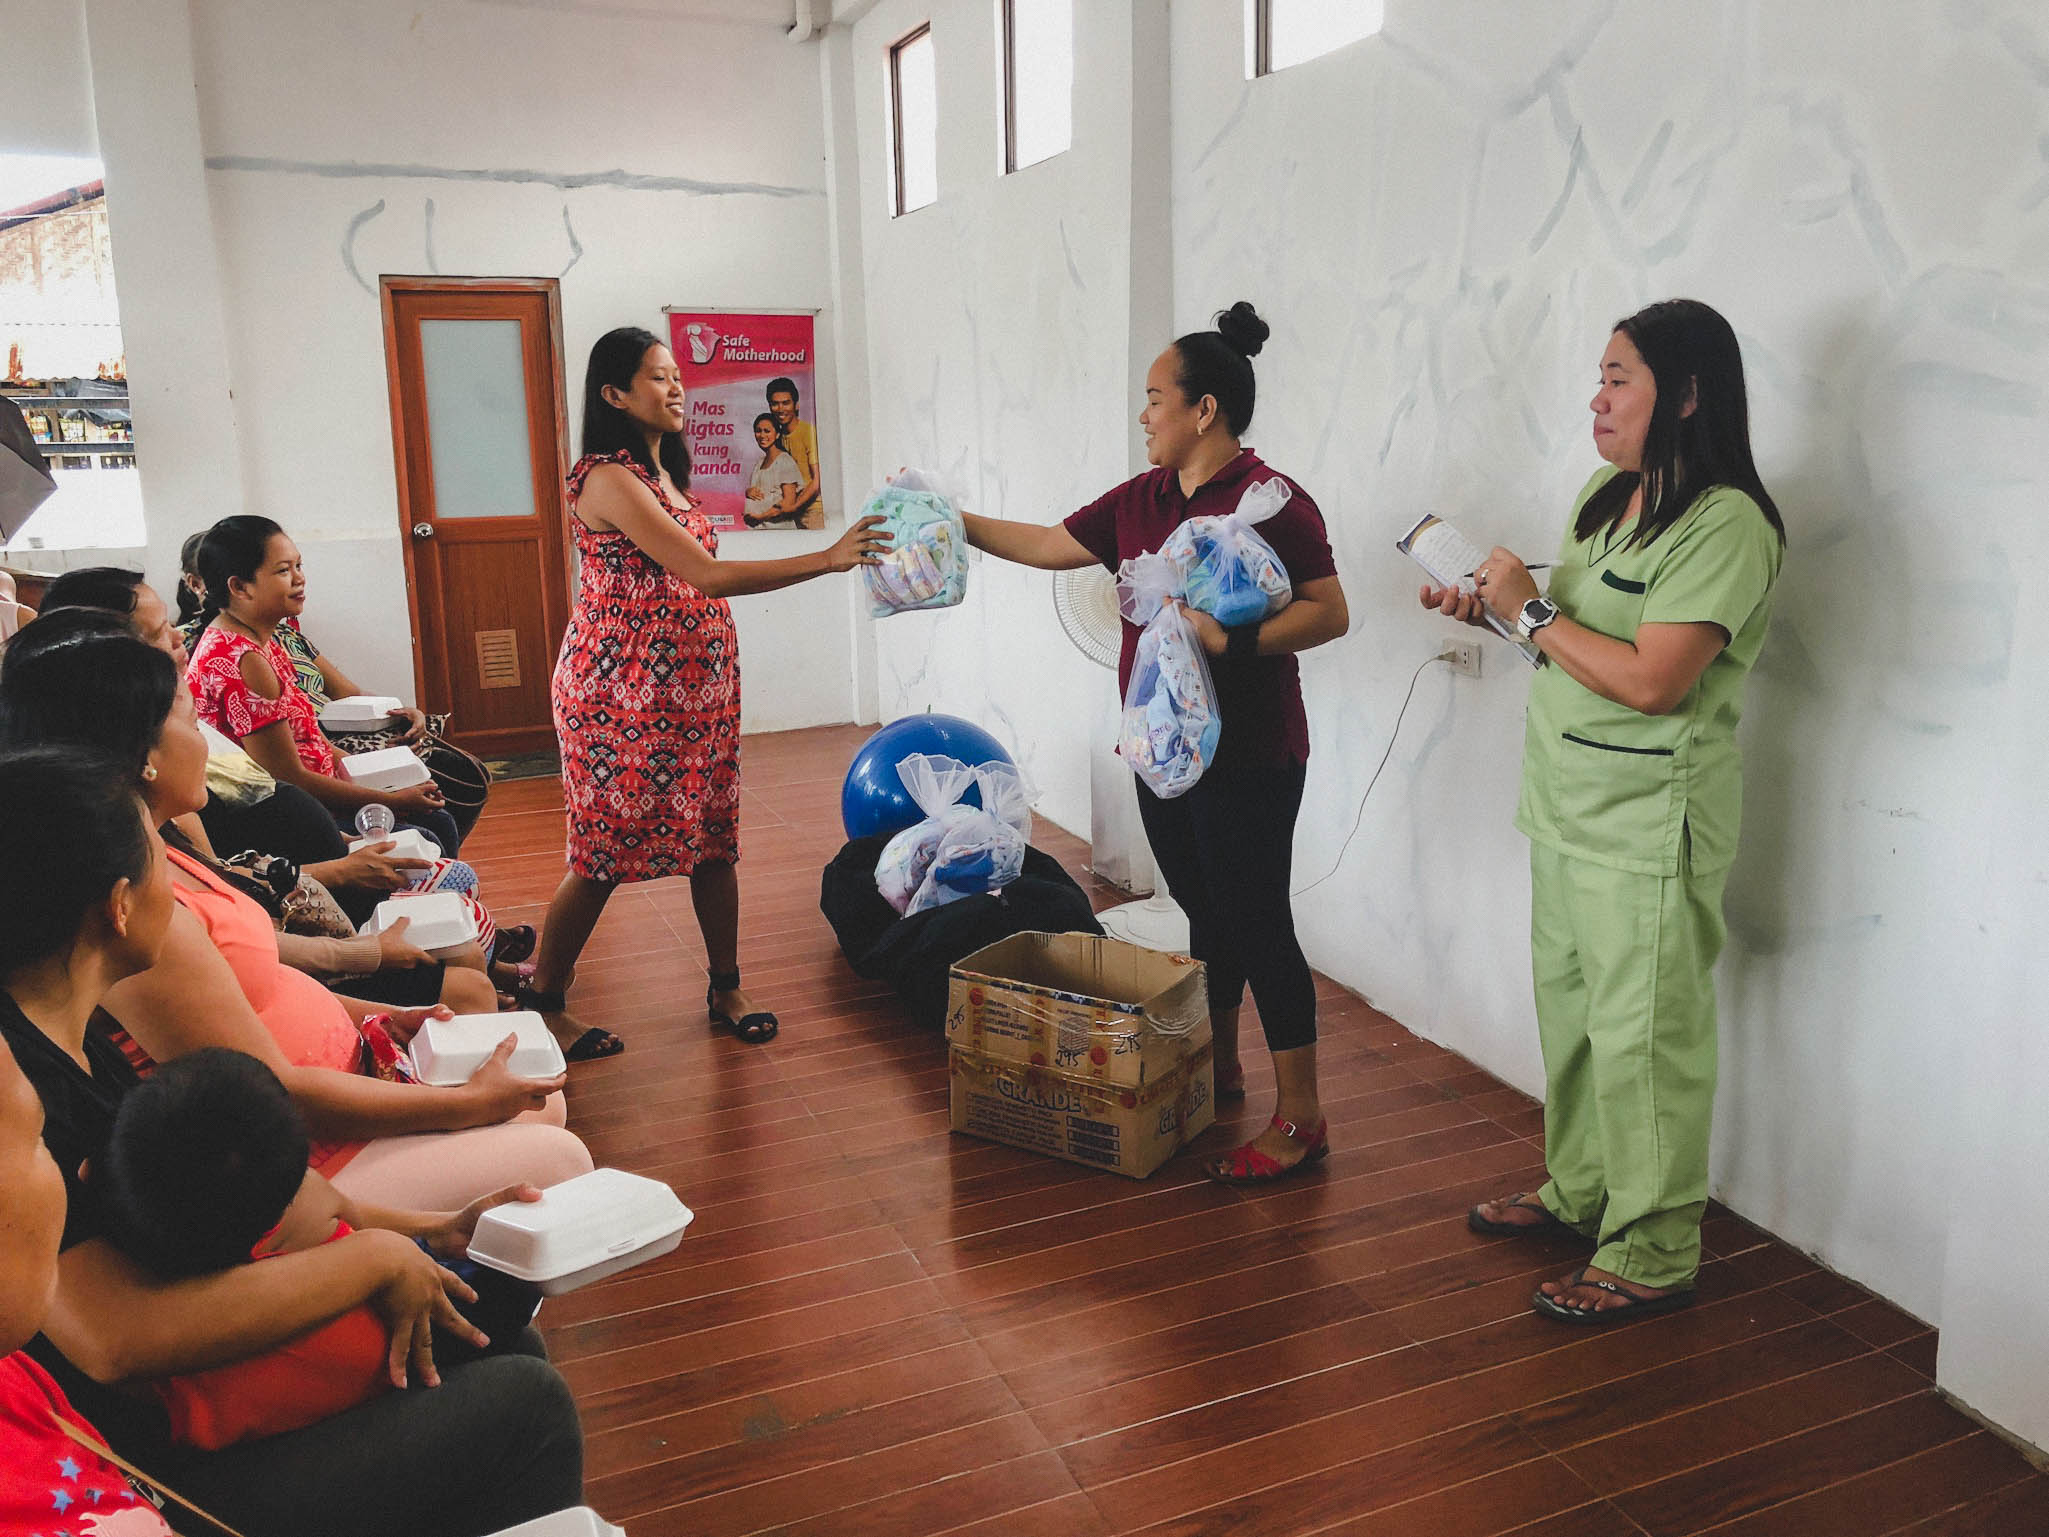 Rina Miller and Nerissa, a midwife at Cumpio Clinic, share necessary supplies with the mothers who attended the conference, helping them to get the start they deserve with adequate supplies.